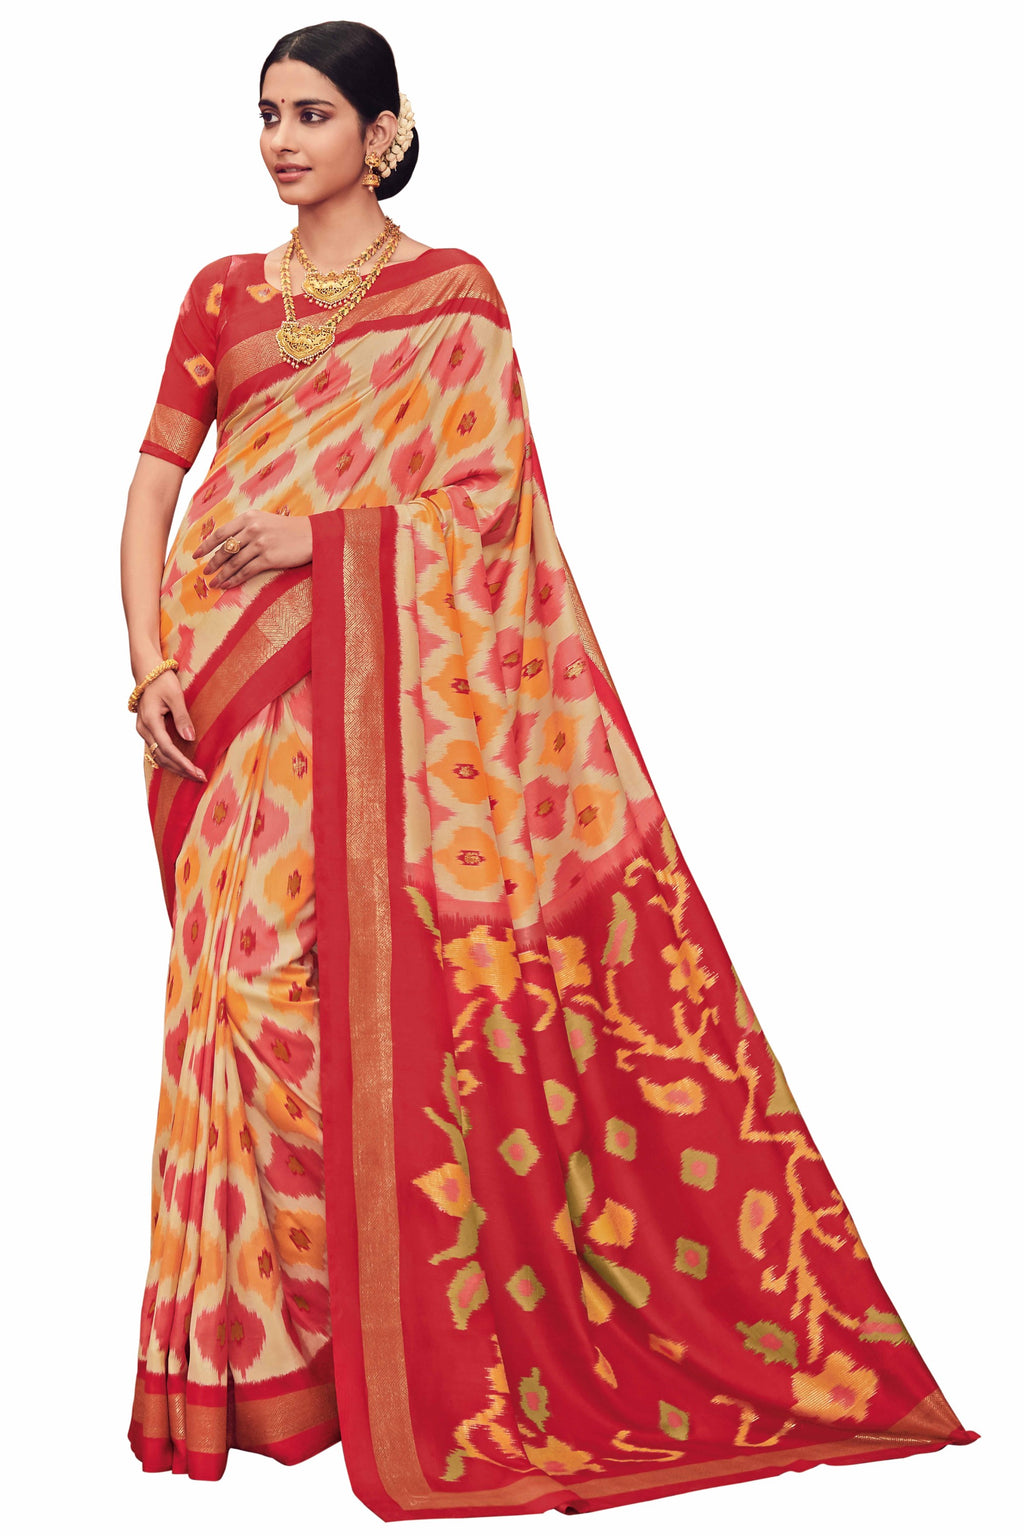 Red & Cream Color Bhagalpuri Festive & Party Wear Sarees NYF-8650